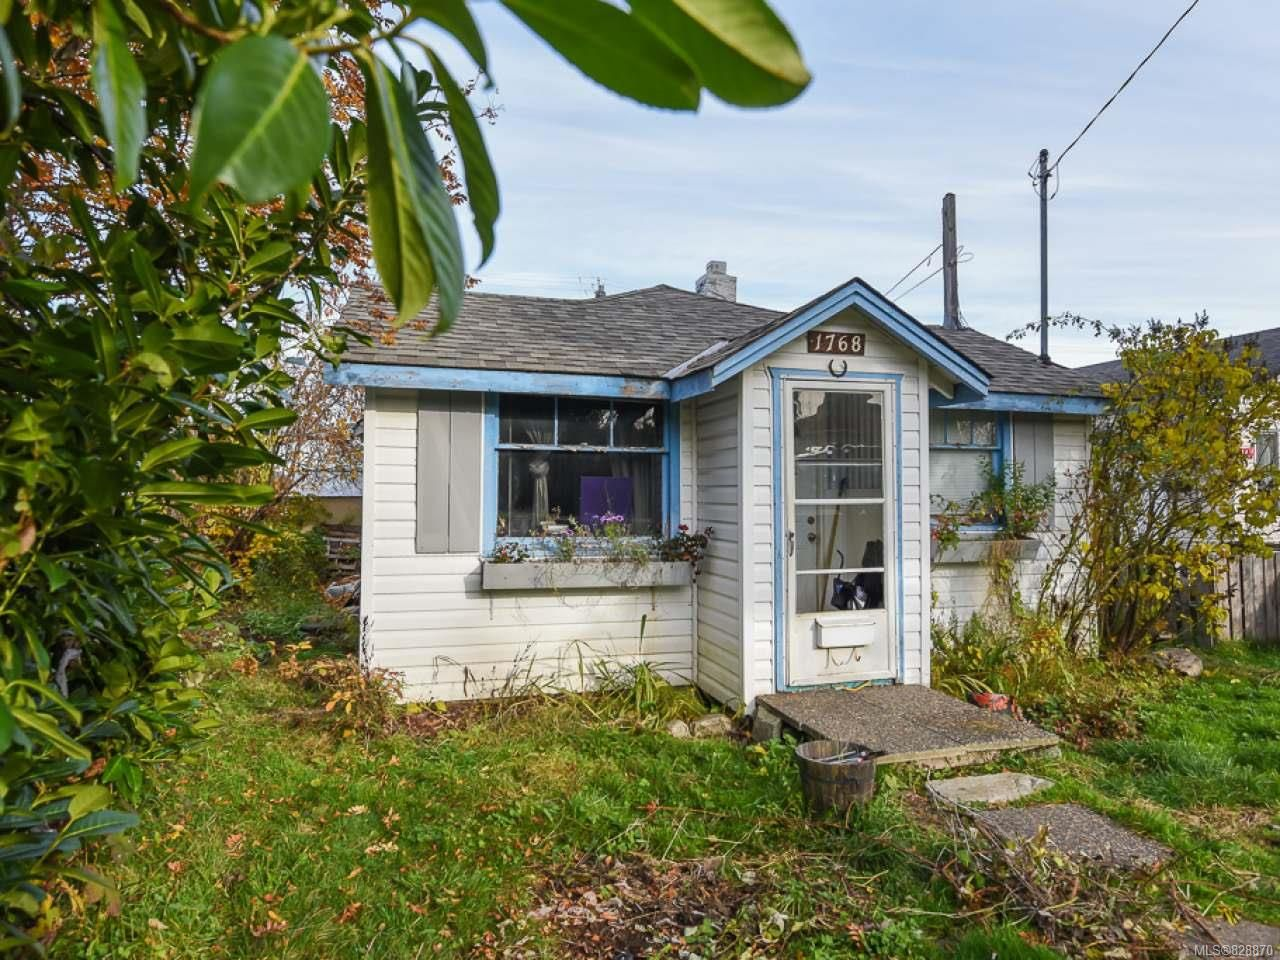 Main Photo: 1768 England Ave in COURTENAY: CV Courtenay City House for sale (Comox Valley)  : MLS®# 828870